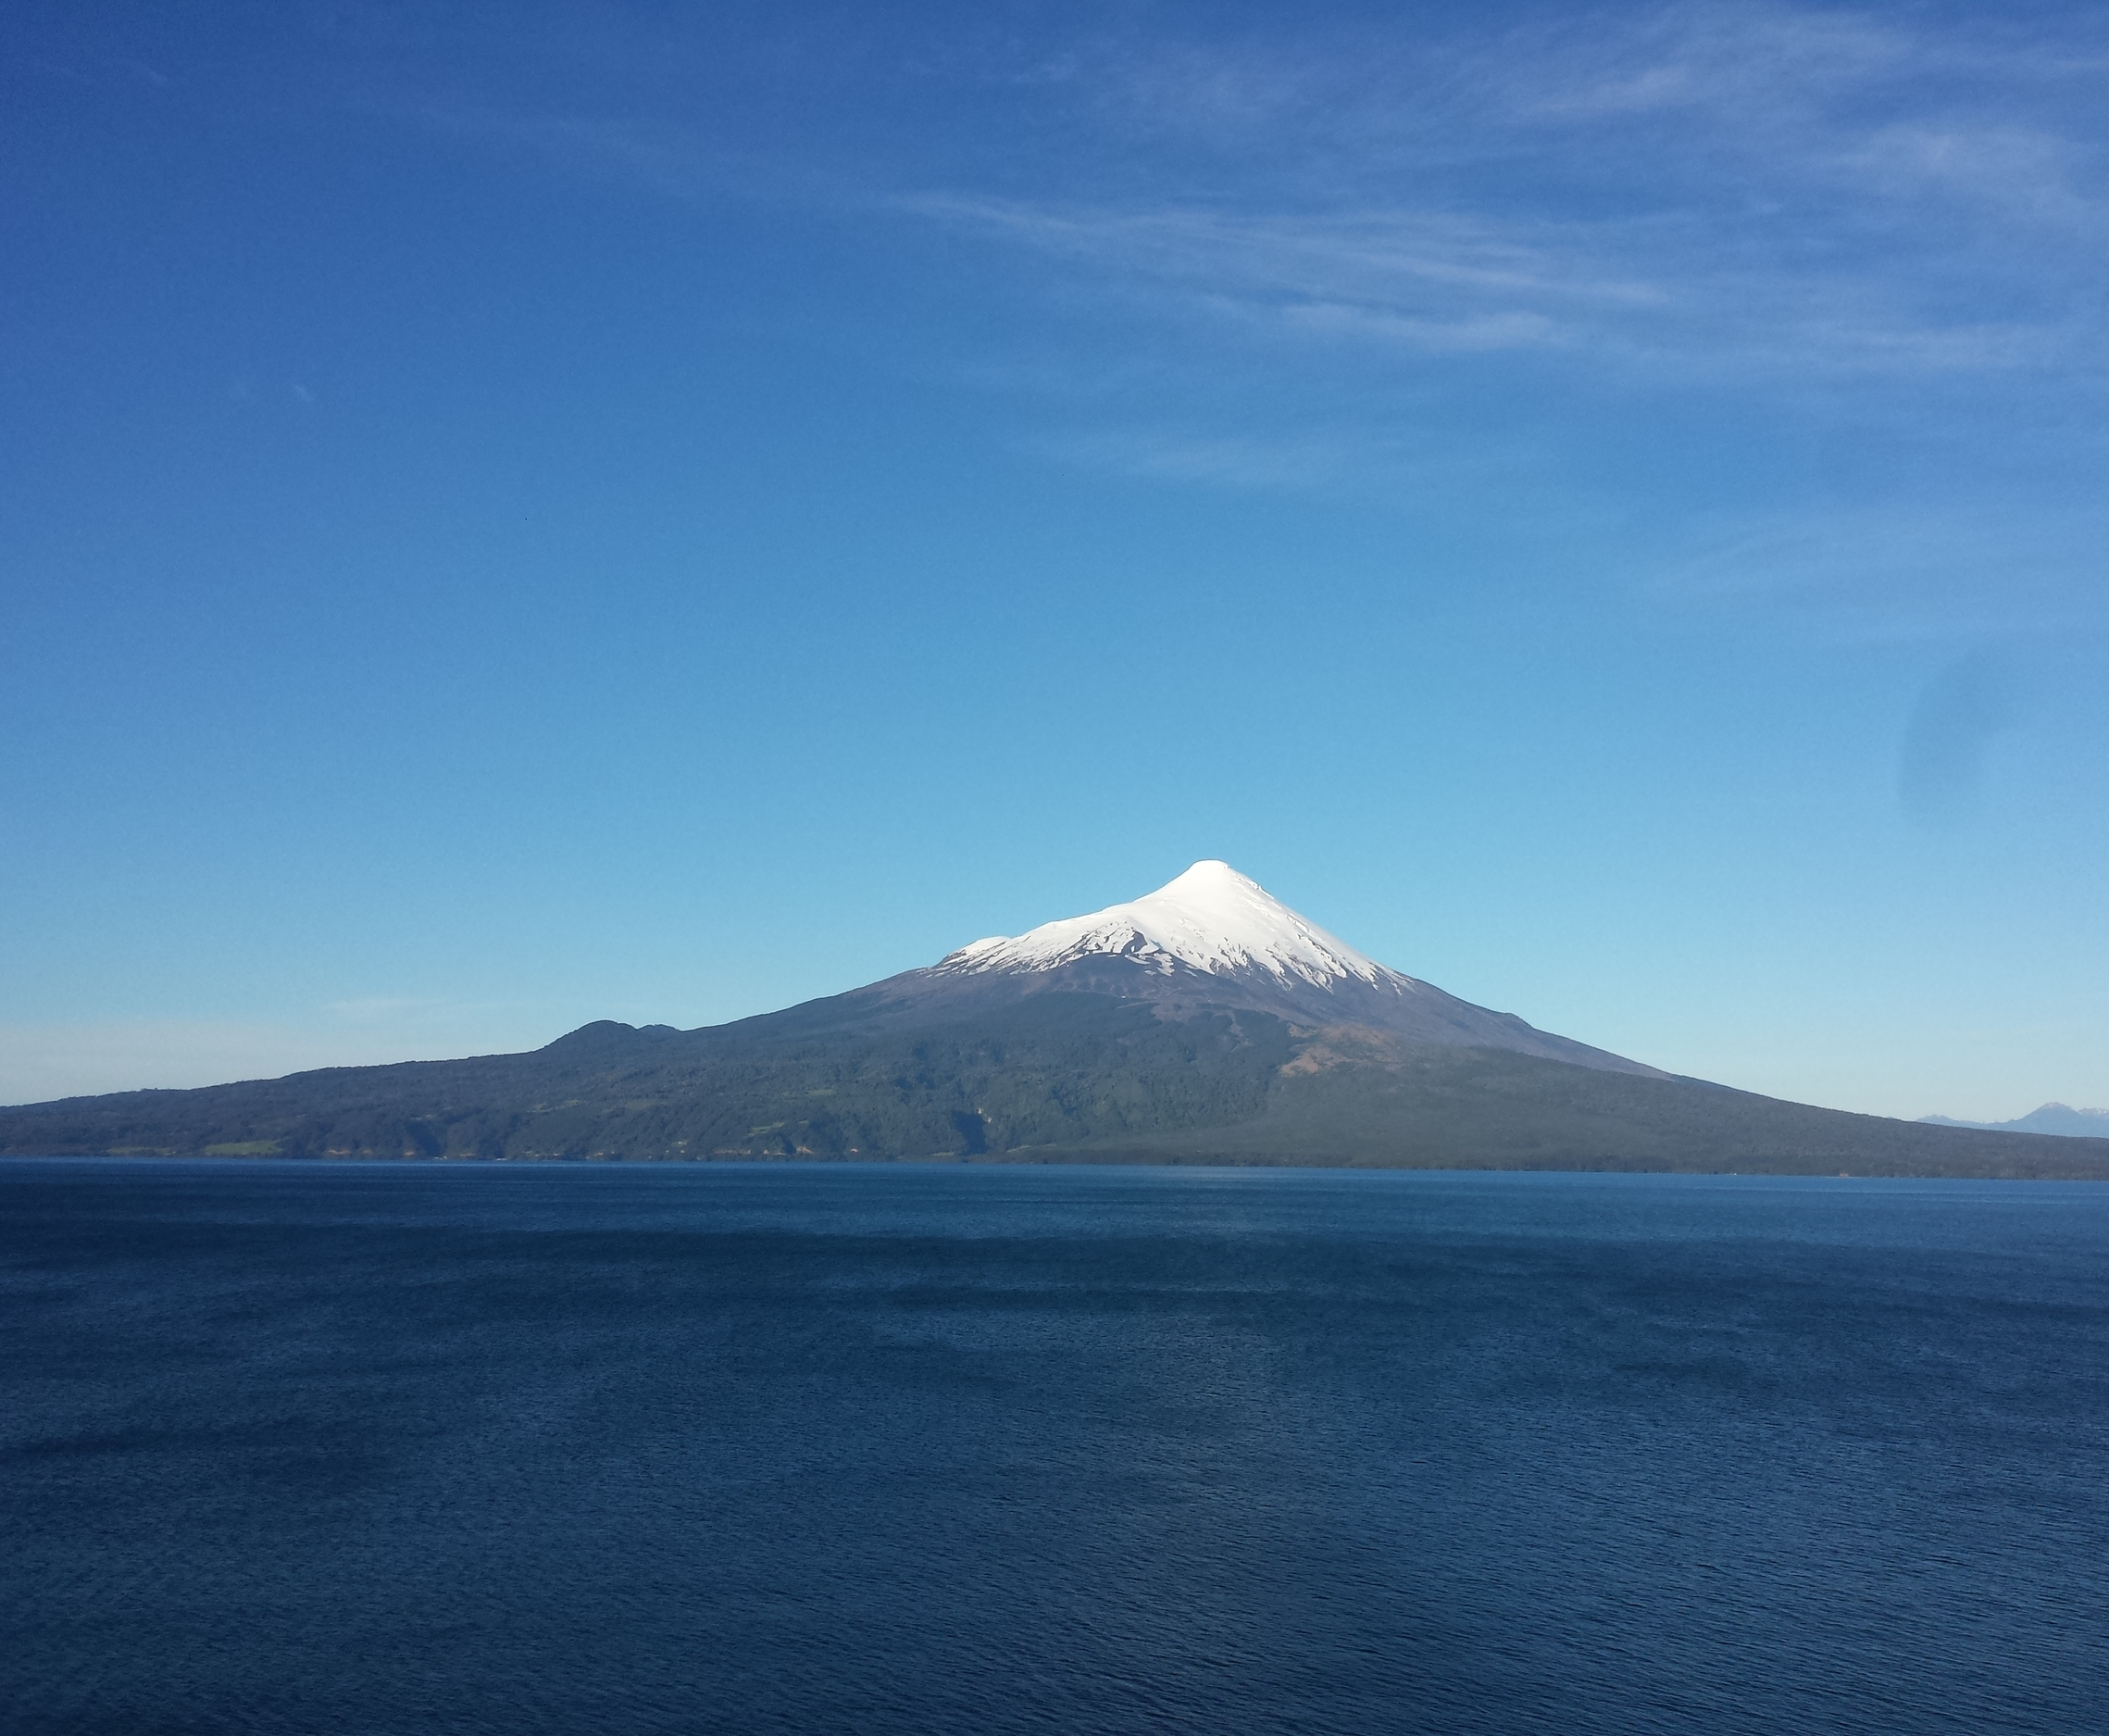 Yup, there are pretty amazing volcanoes all over